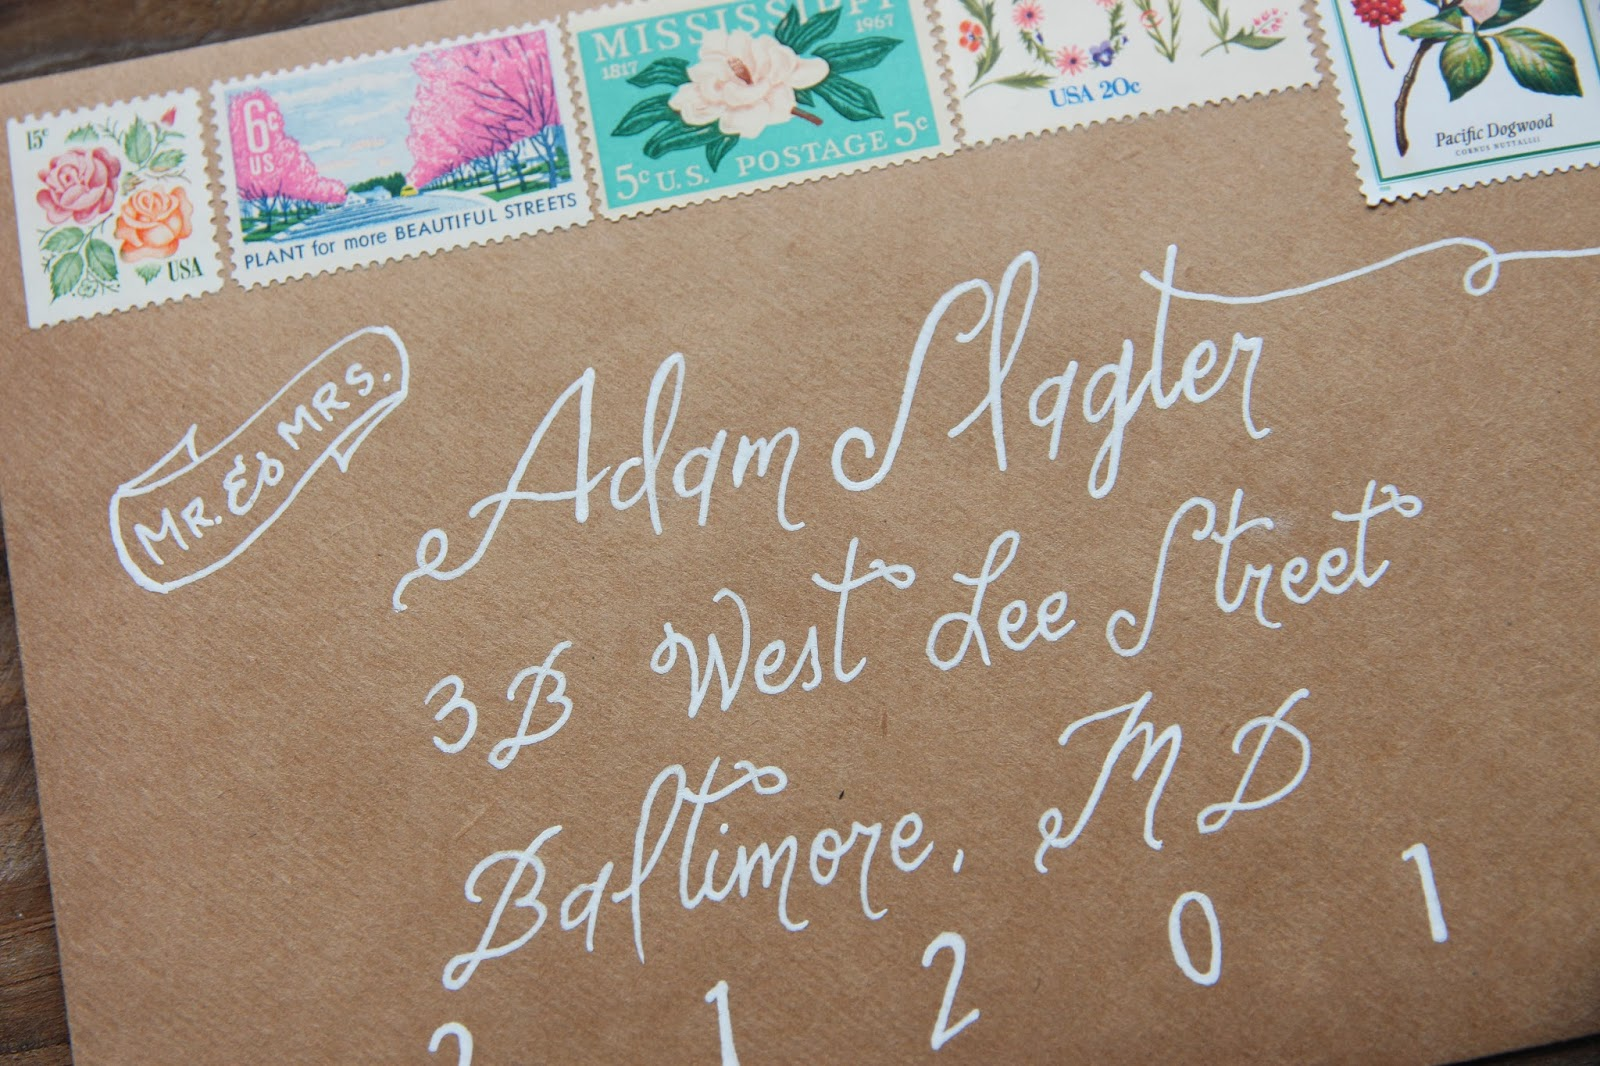 wedding invitations vintage stamps stamps for wedding invitations for more than just weddings Can you imagine how gorgeous your holiday cards could be Check out some awesome calligraphy and stamp resources below